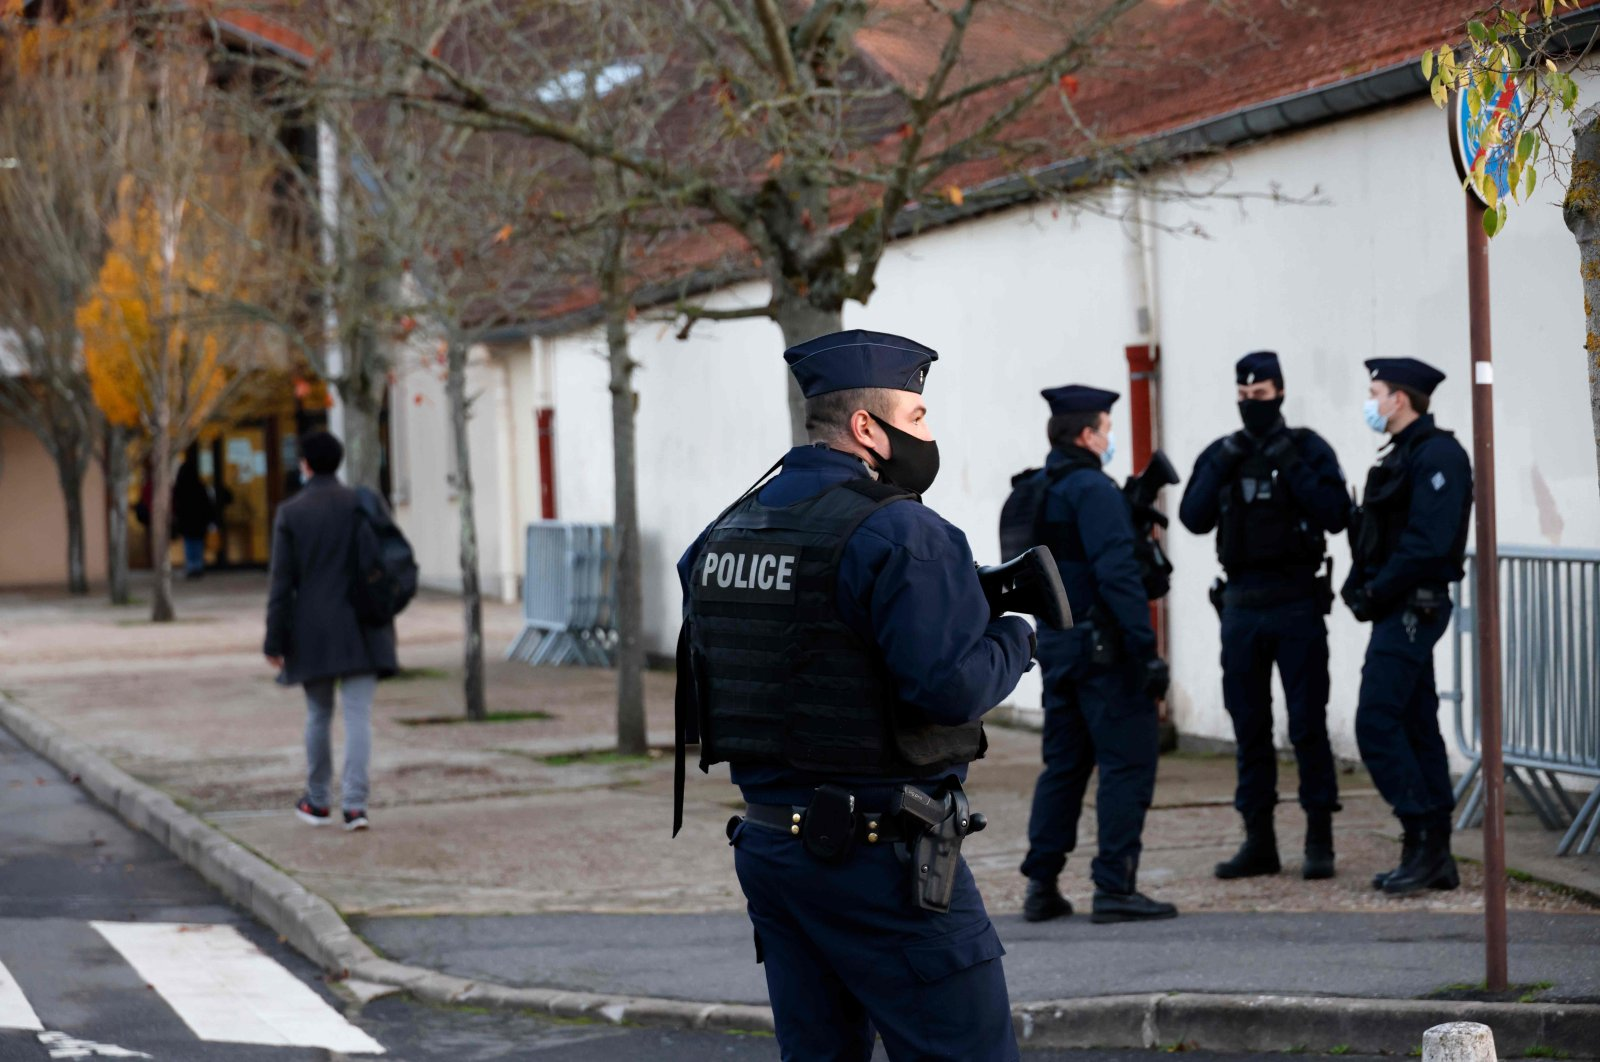 French CRS (Compagnies Republicaines de Securite) police officers stand near the entrance of Le Bois d'Aulne middle school where pupils return to school after the holidays, two weeks after a teacher was decapitated by an attacker, Conflans-Sainte-Honorine, northwest of Paris, France, Nov. 3, 2020. (AFP Photo)